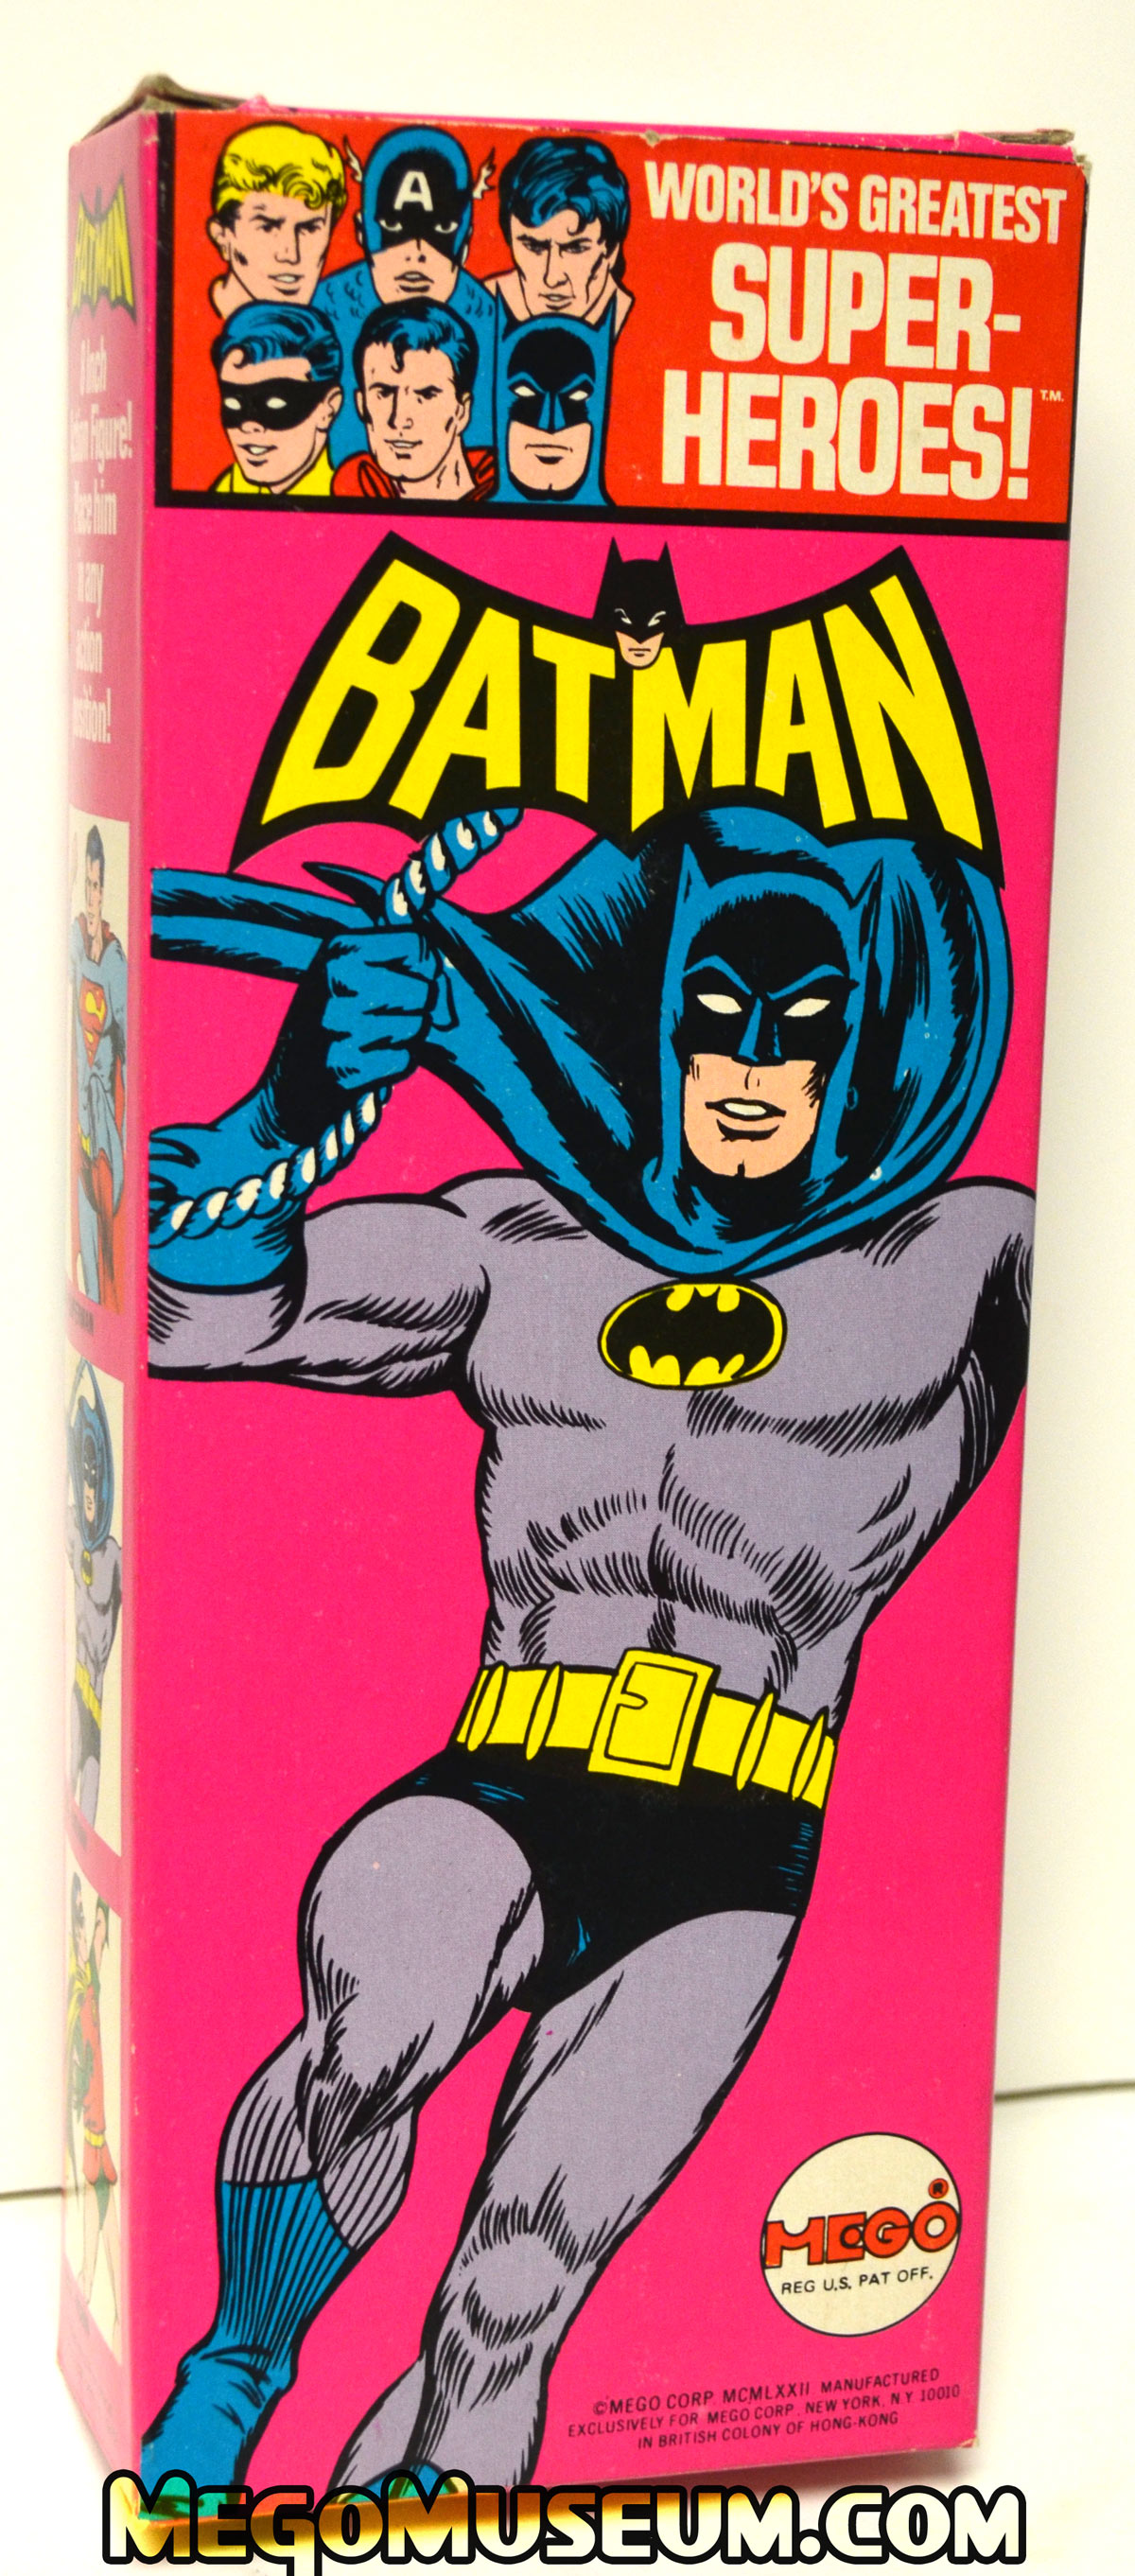 Mego Solid Boxed Batman from 1973